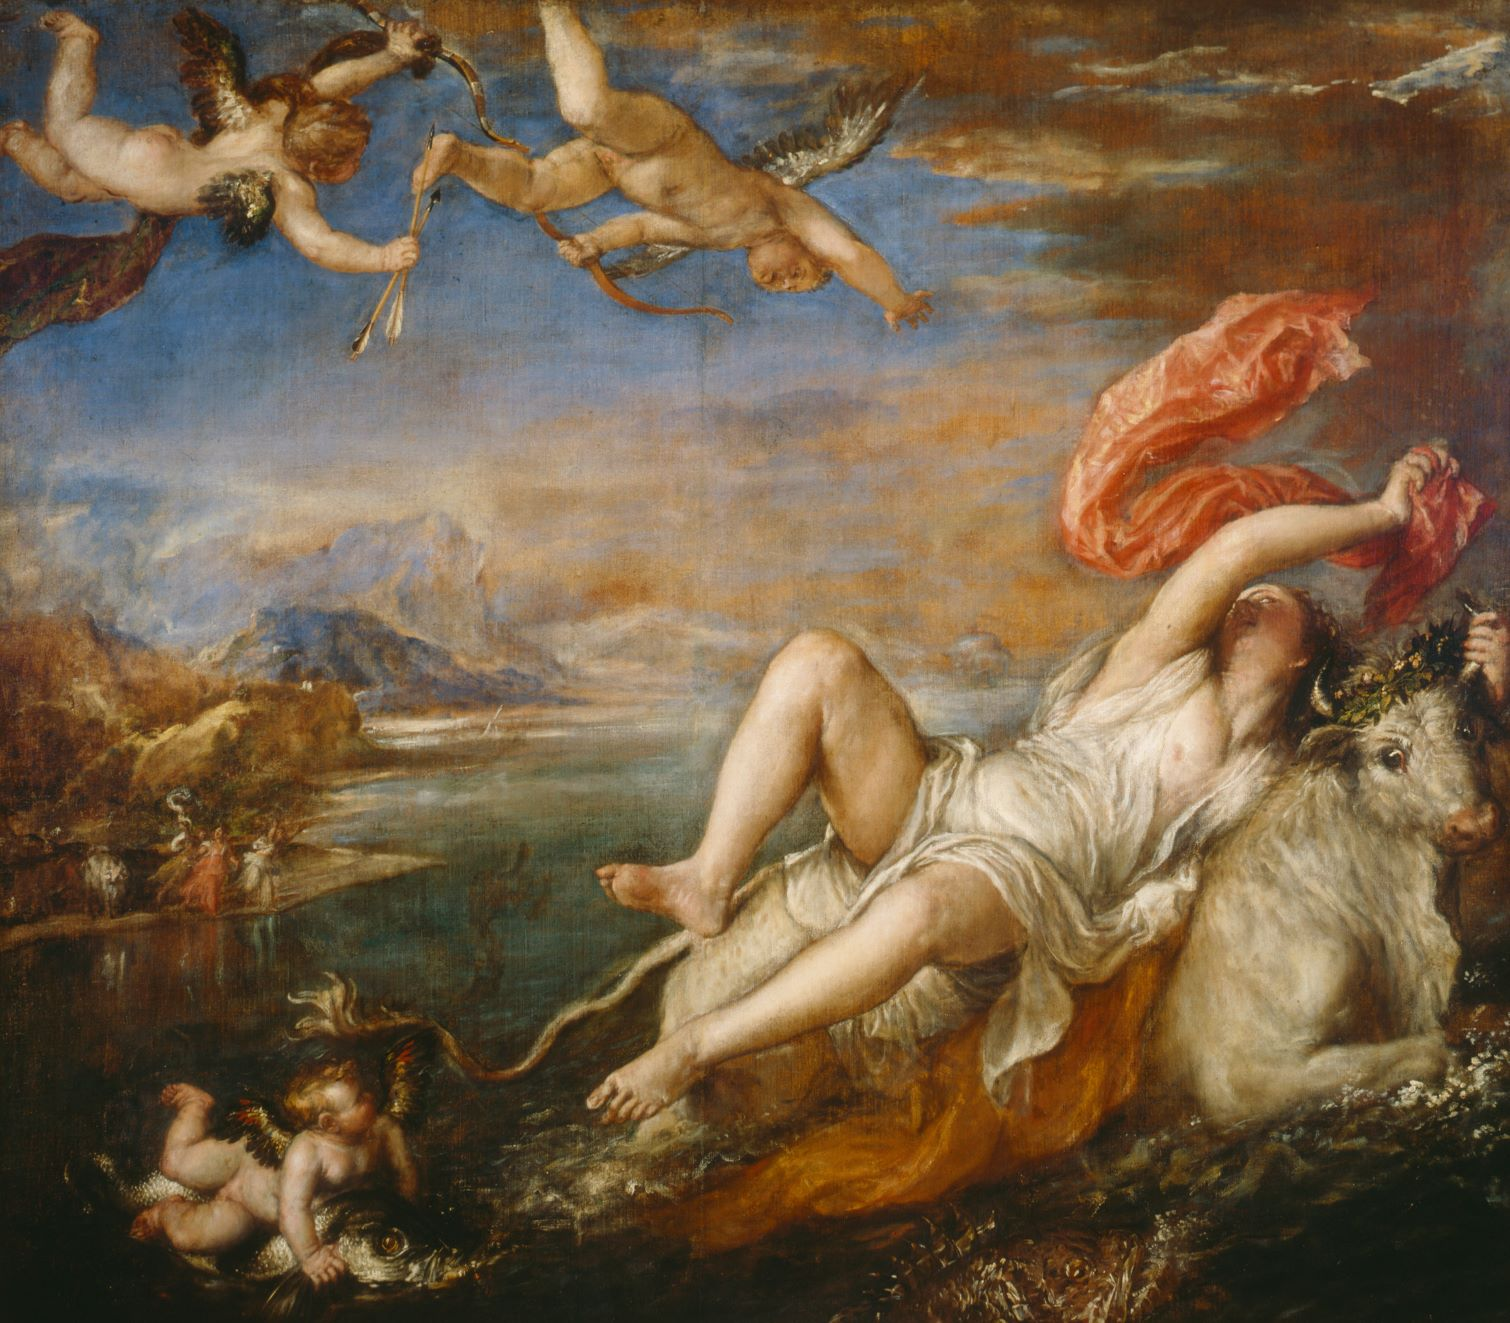 Love, Desire, Death. Le Poesie di Tiziano in mostra alla National Gallery di Londra